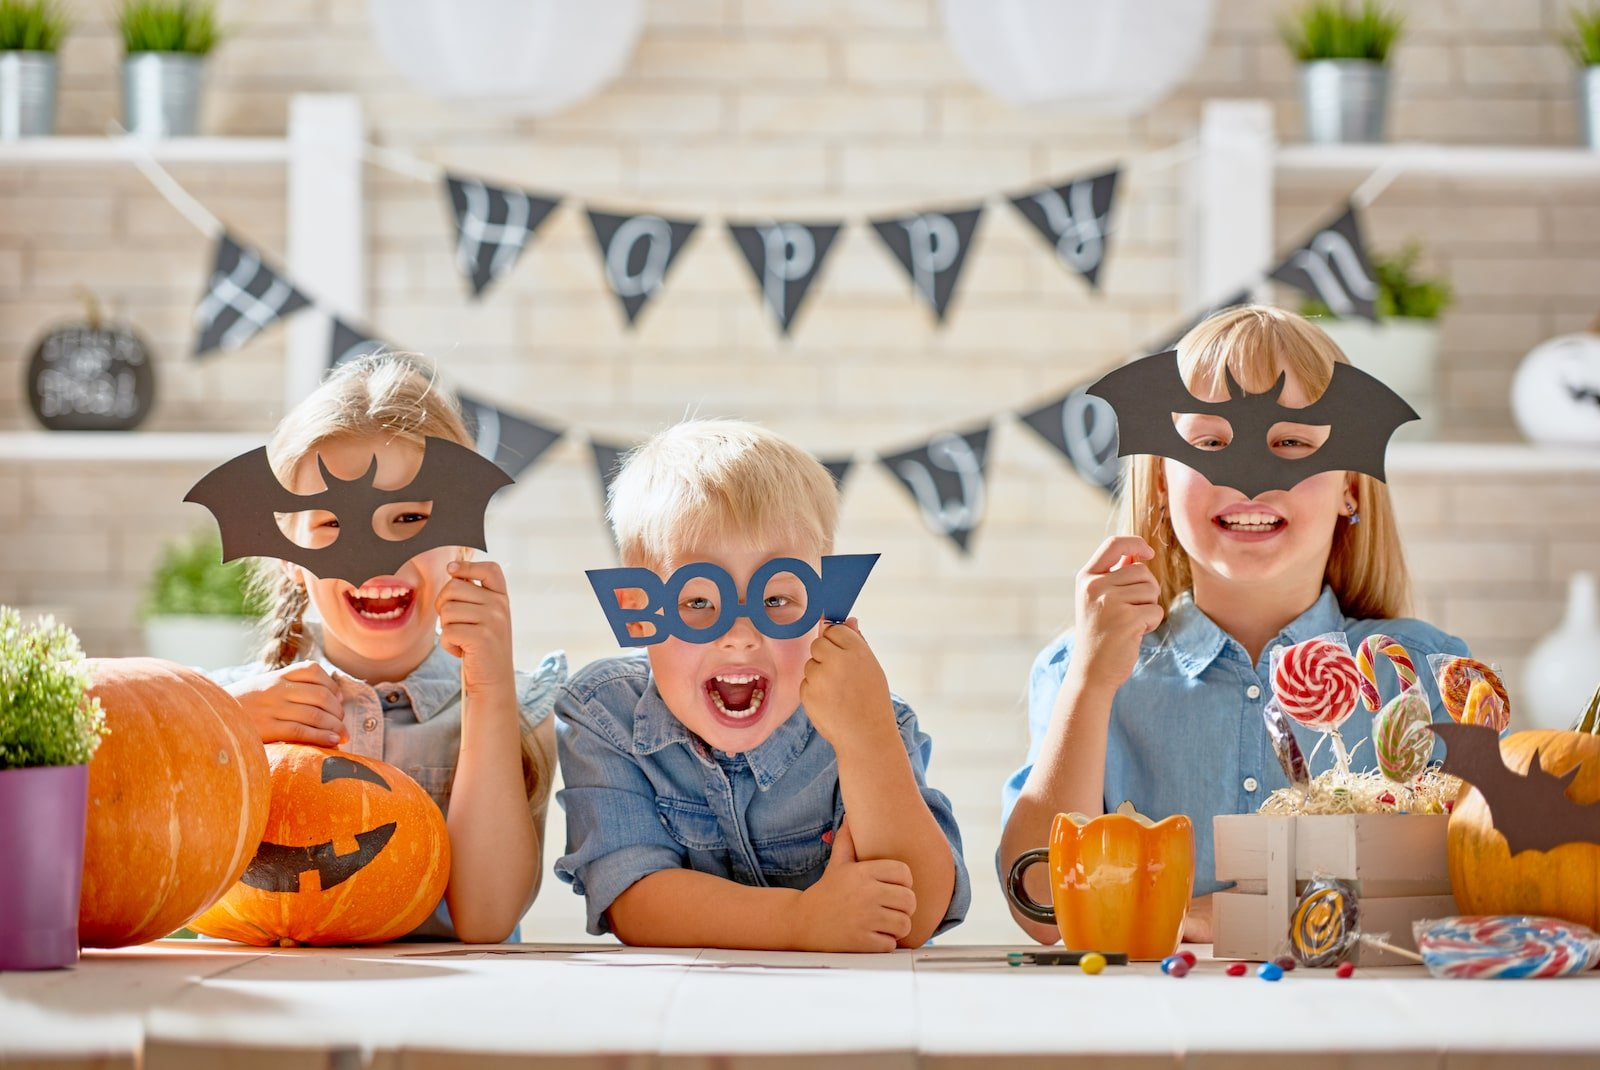 Why You Should Skip Out on All the Sugar and Candy This Halloween